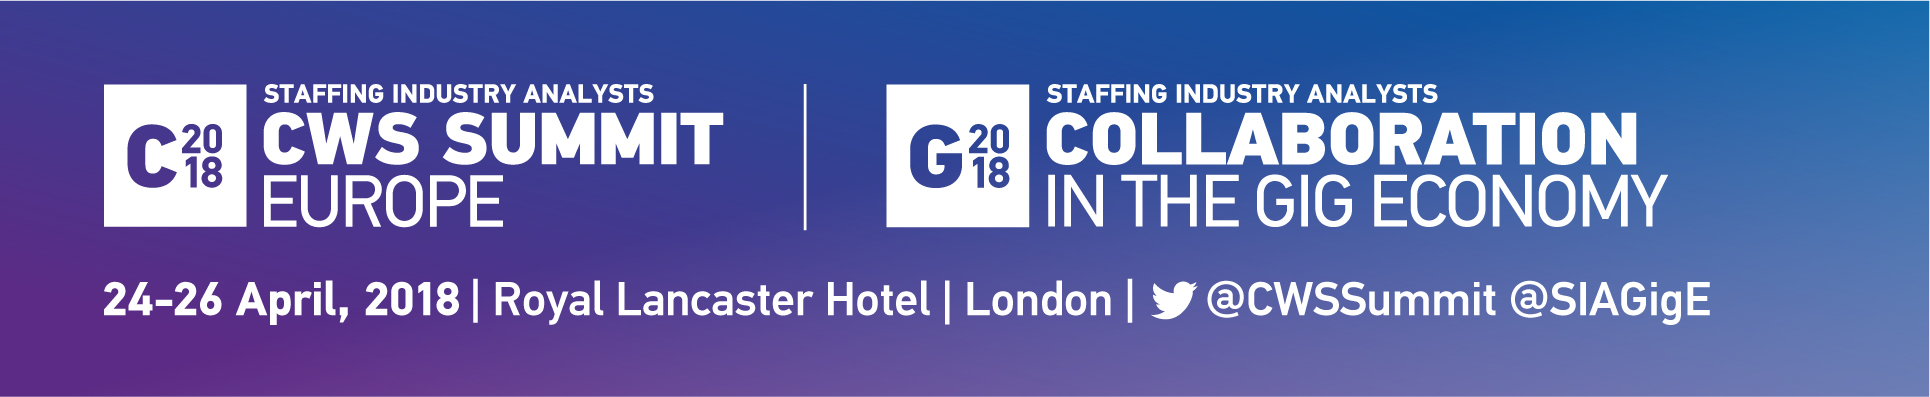 CWS Summit Europe & Collaboration in the Gig Economy | 24-26 April 2018 | Royal Lancaster Hotel | Lo